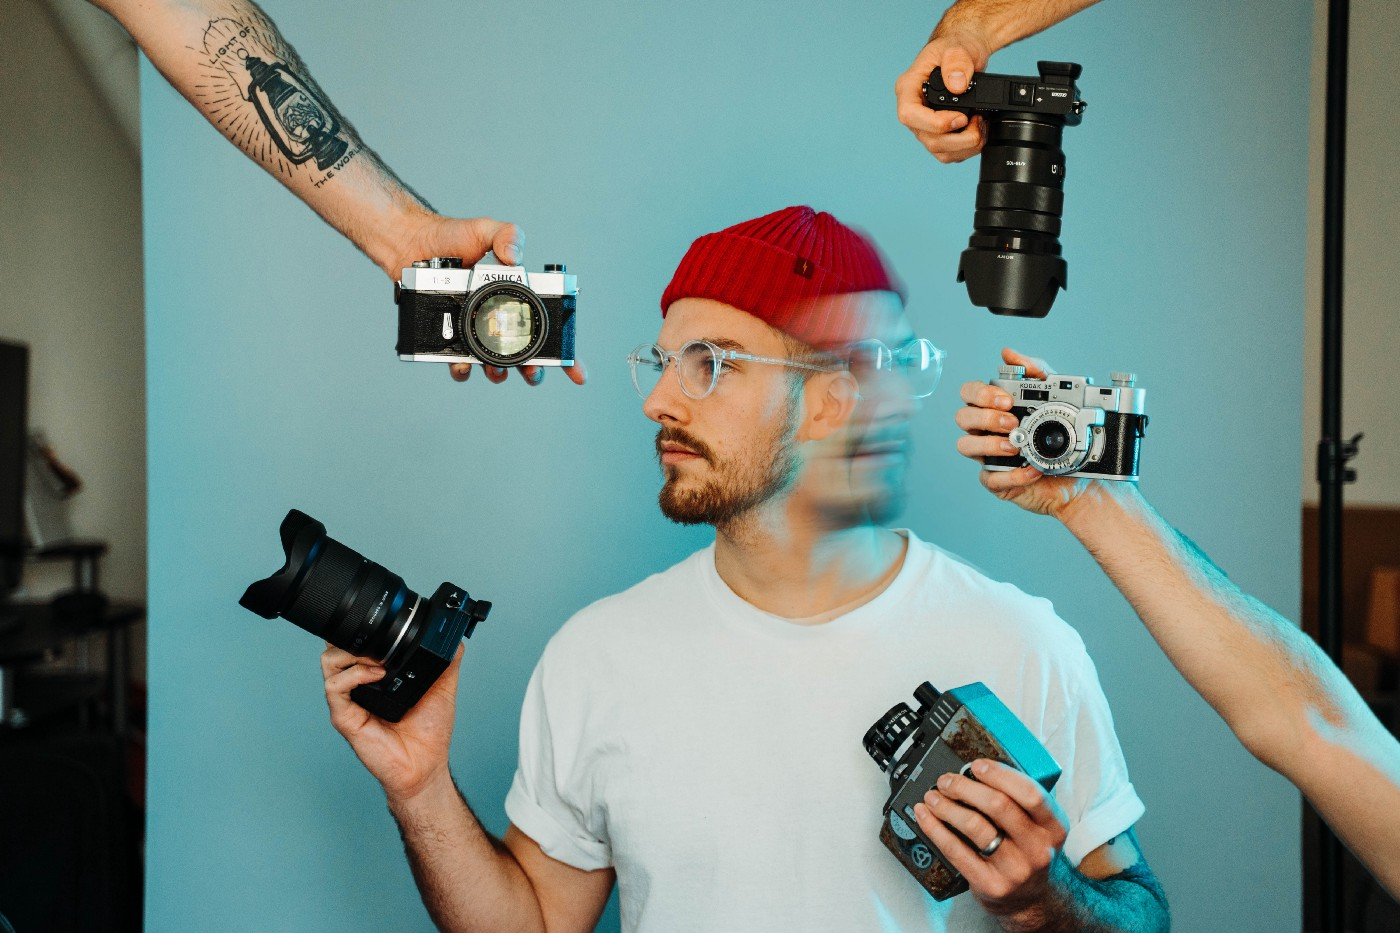 Man with red beanie can't decide what camera to use